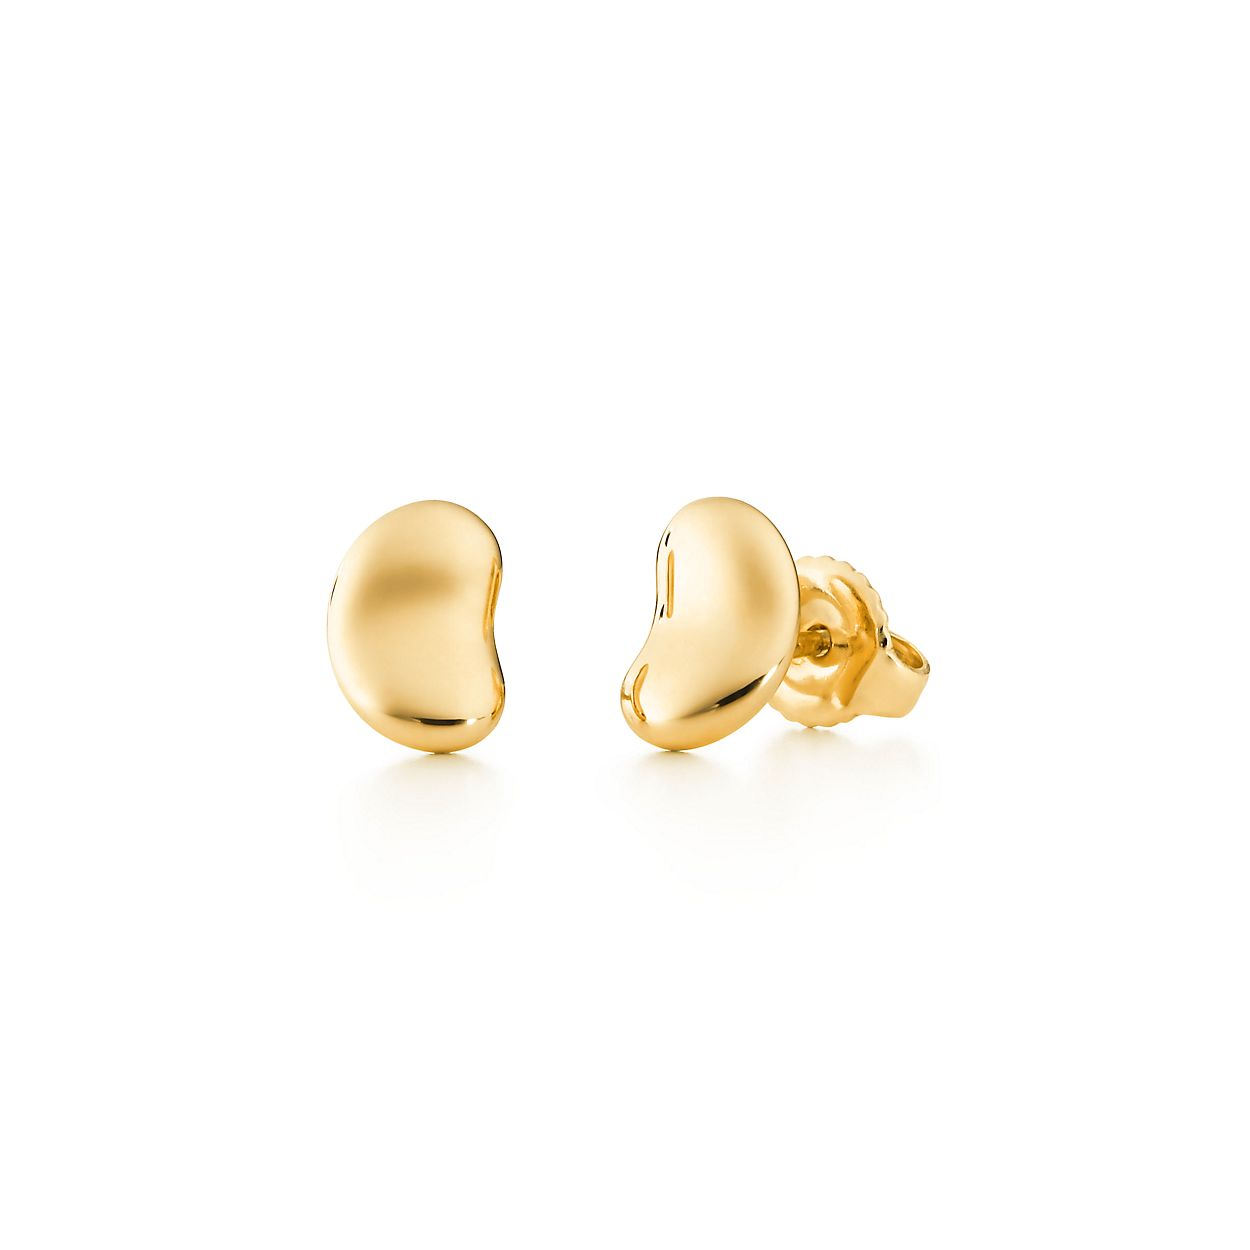 Elsa Peretti Bean earrings in 18k gold - Size 9 MM Tiffany & Co. hcMMQS